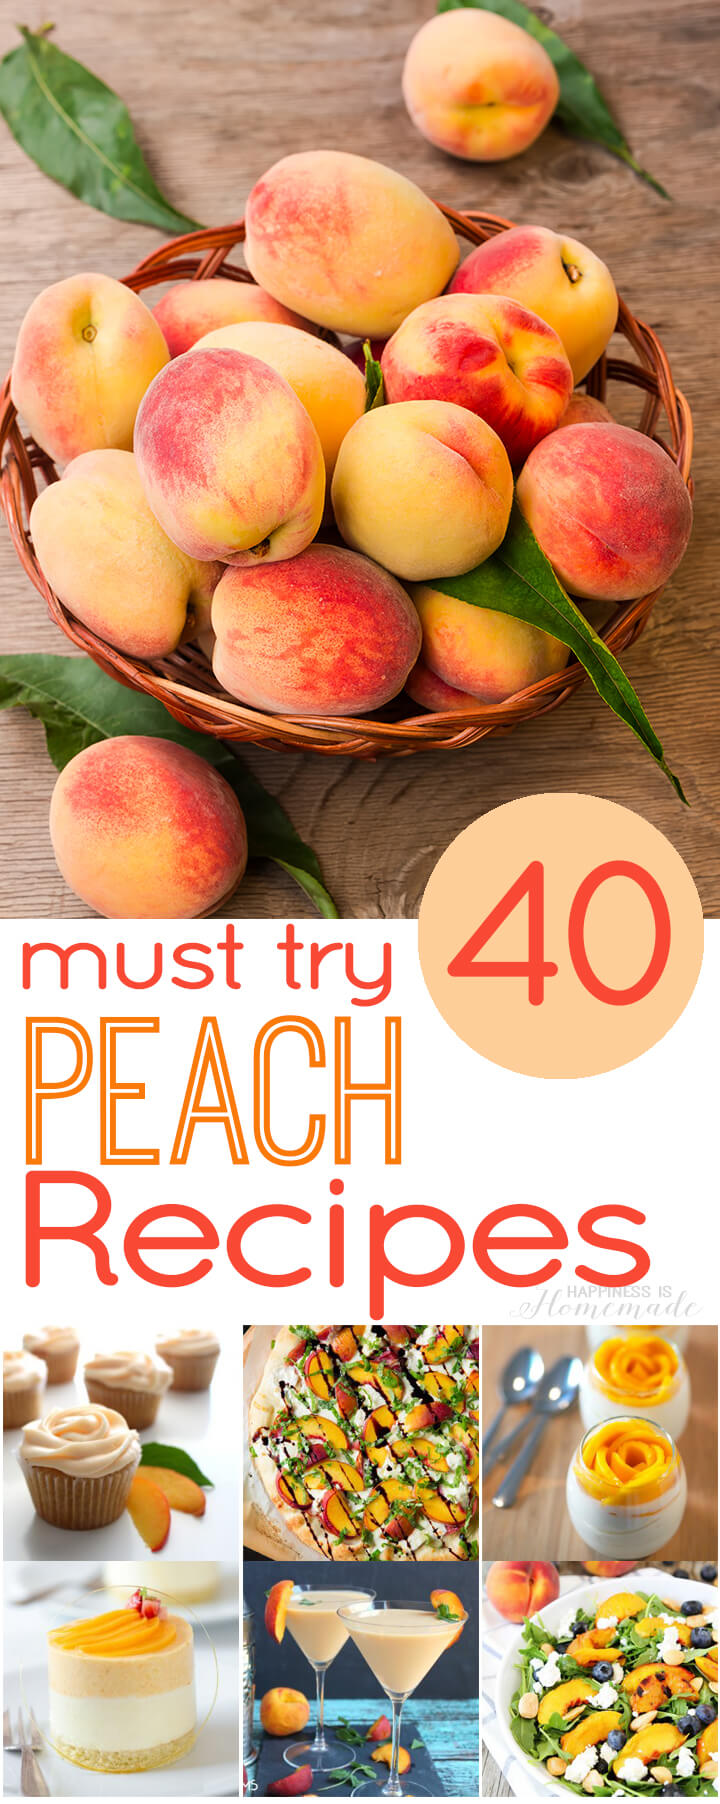 40 delicious must-try peach recipes! These all sound incredible!